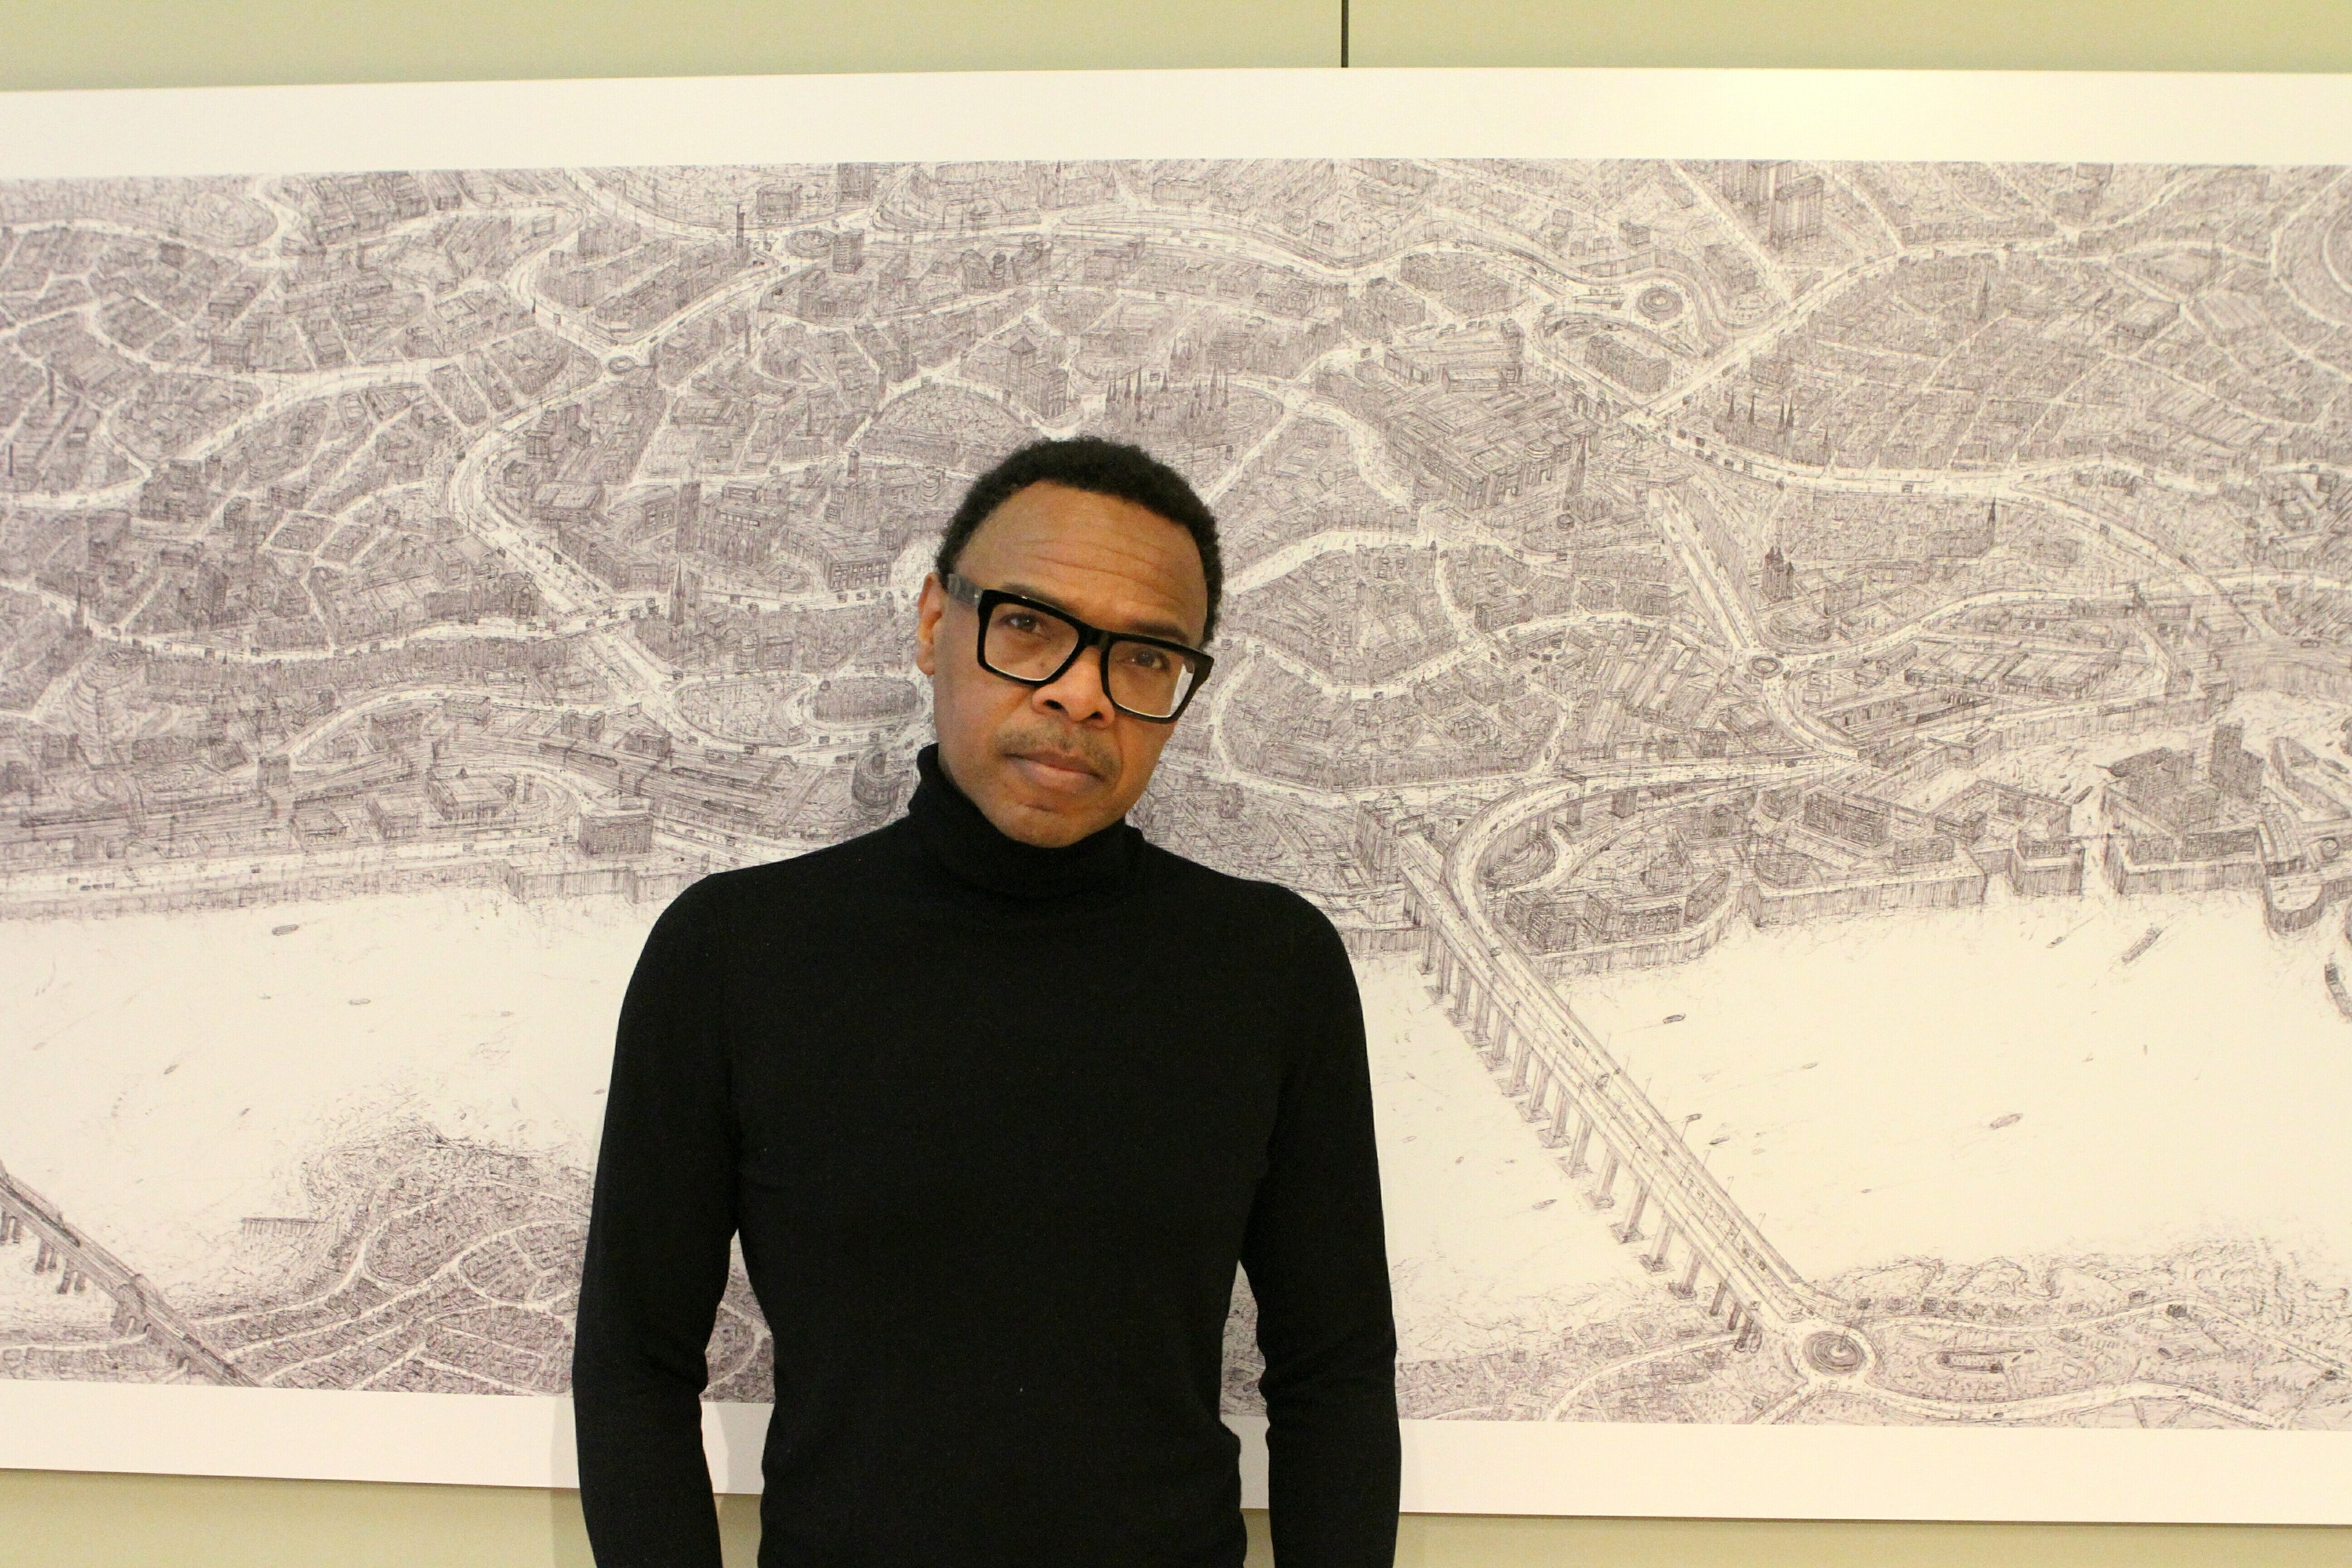 Carl Lavia with his sketch of Dundee.